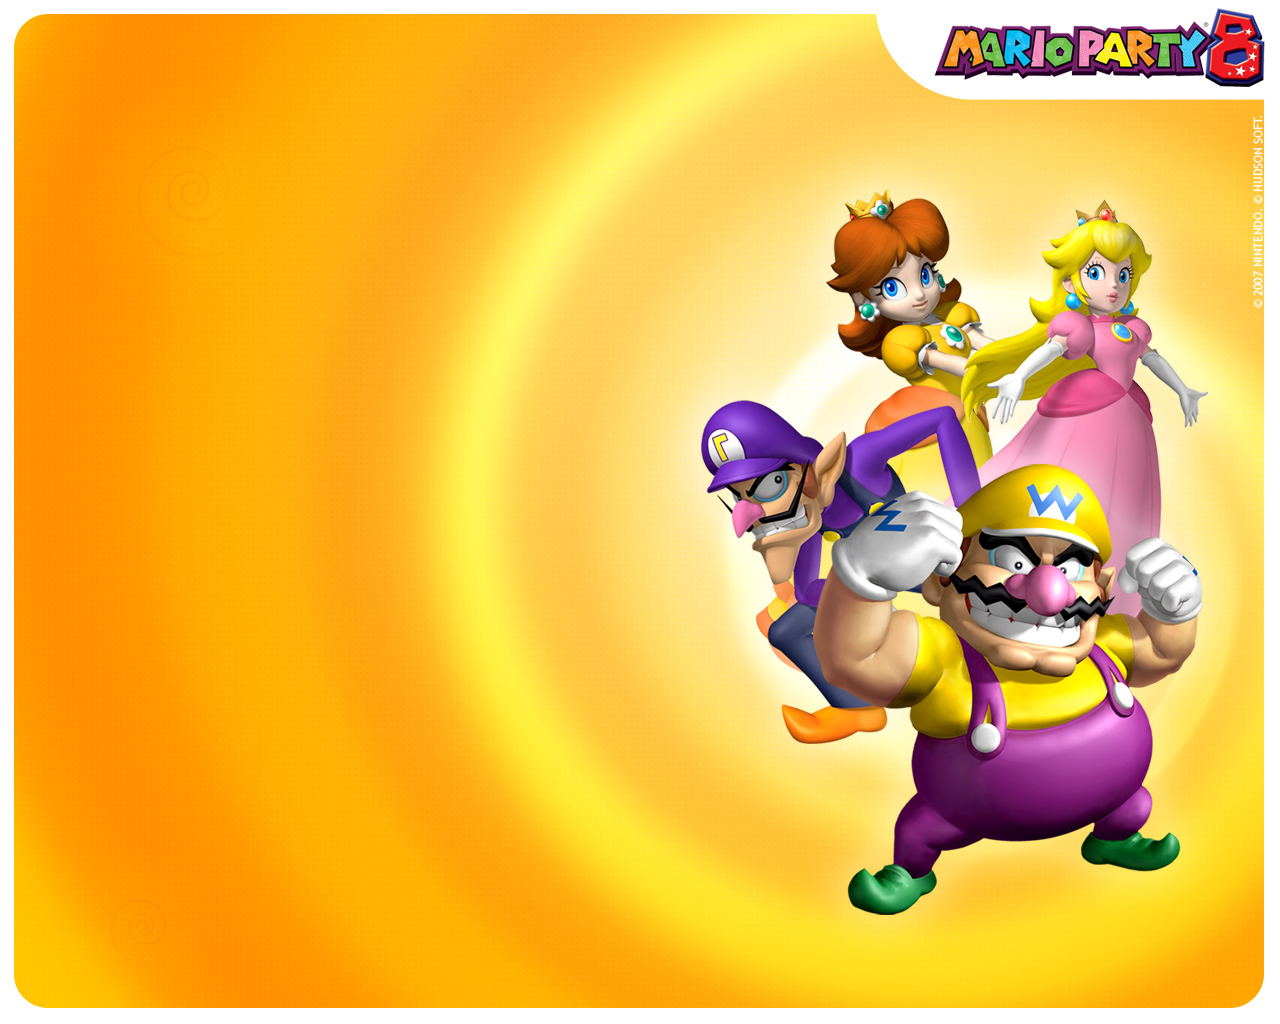 Mario Party Mario Party 8Wario And Waluigi Wallpaper